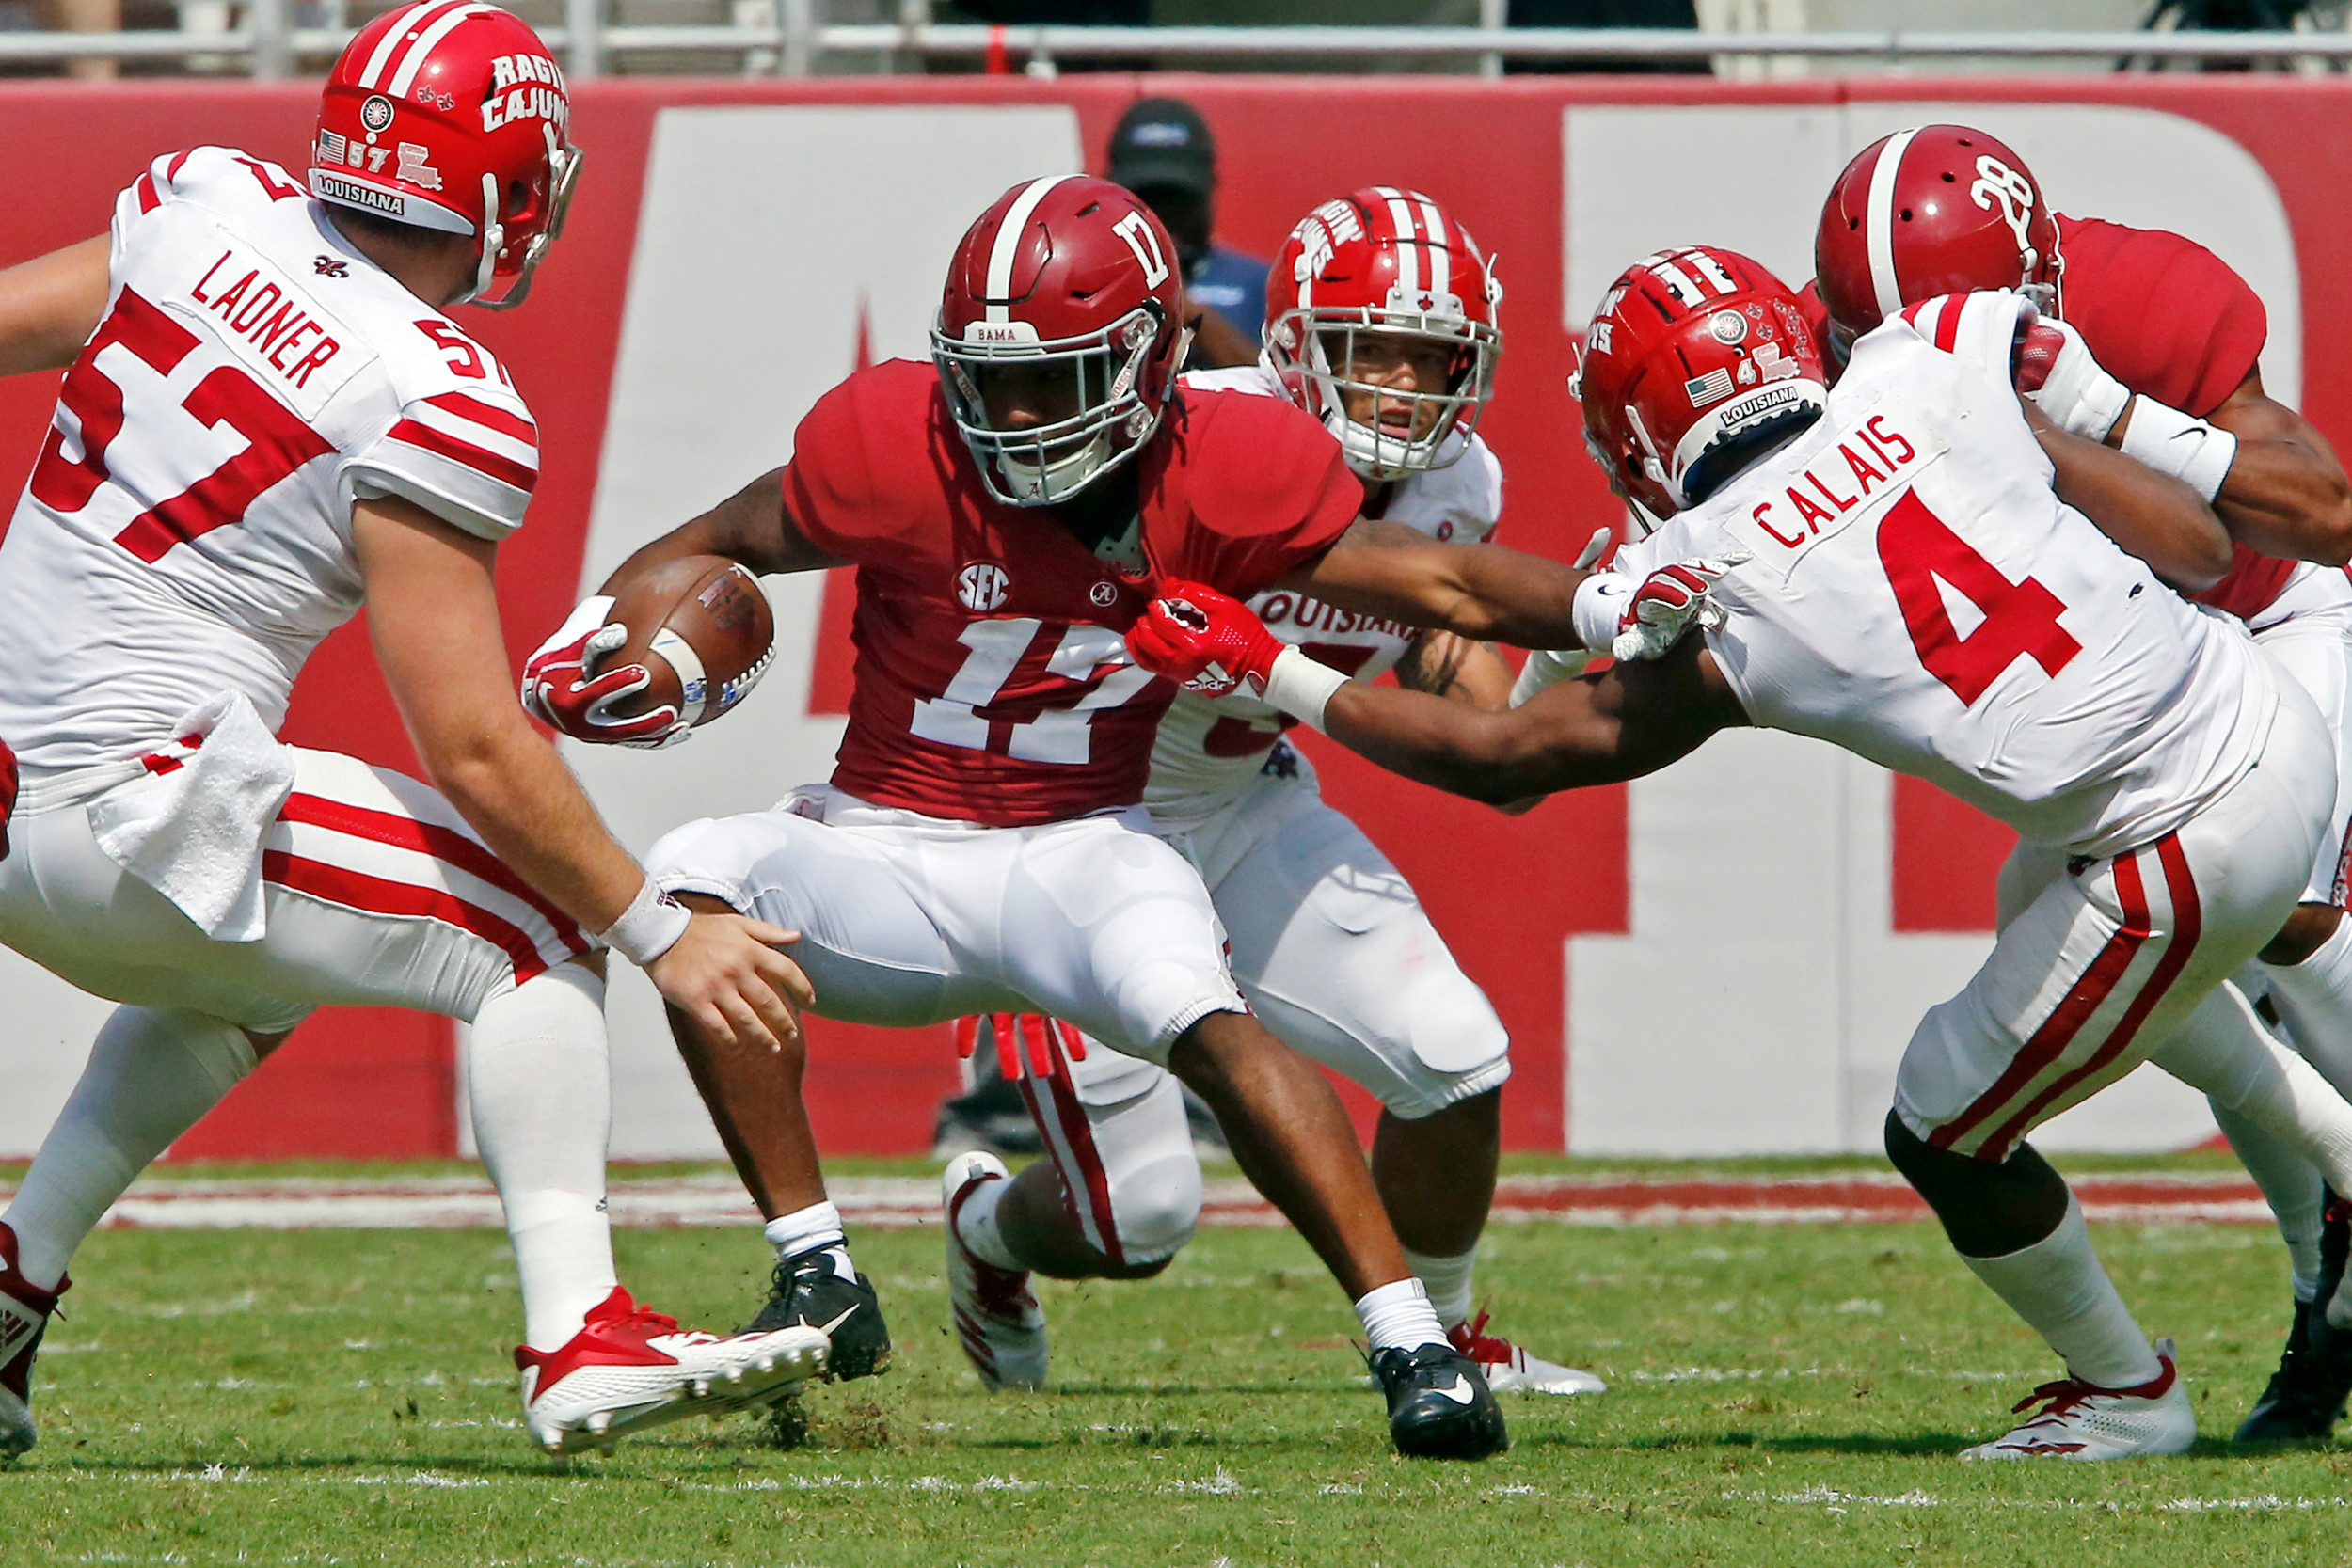 Alabama Crimson Tide wide receiver Jaylen Waddle (17) broke several tackles while returning a punt at Bryant-Denny Stadium in Tuscaloosa, Al on September 29, 2018. Jason Clark / Daily Mountain Eagle